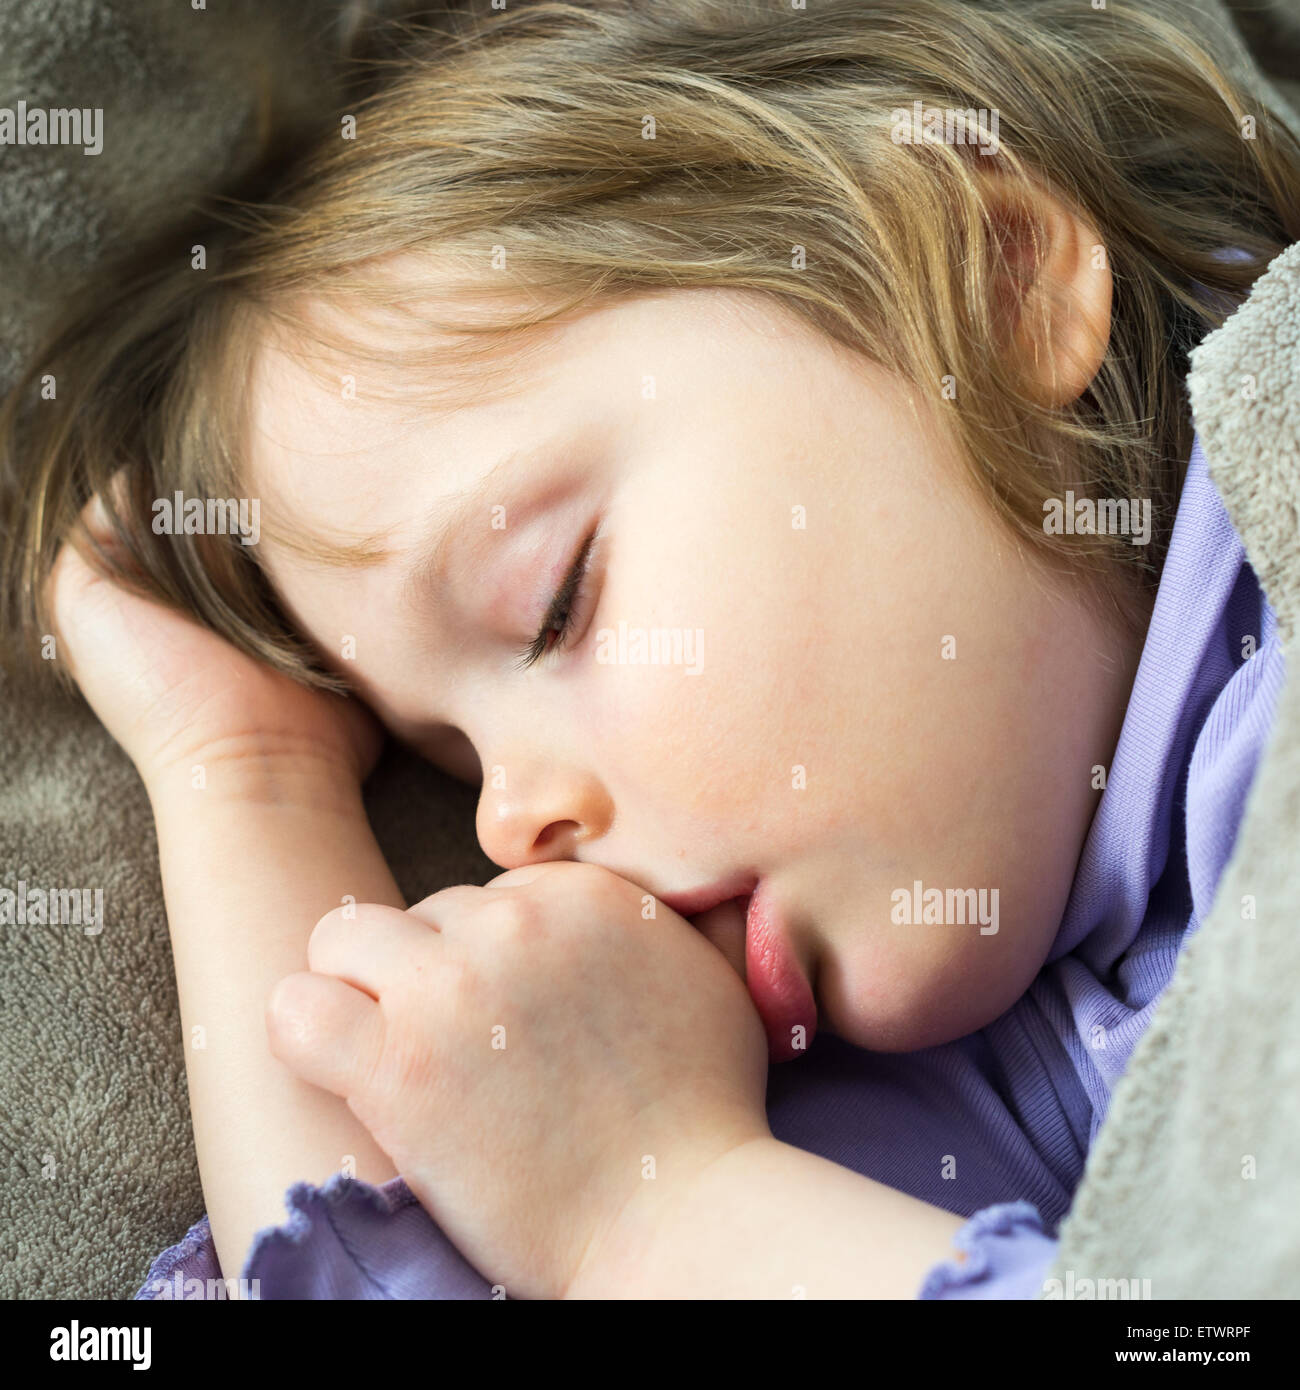 Sleeping little cute baby sucking thumb - Stock Image